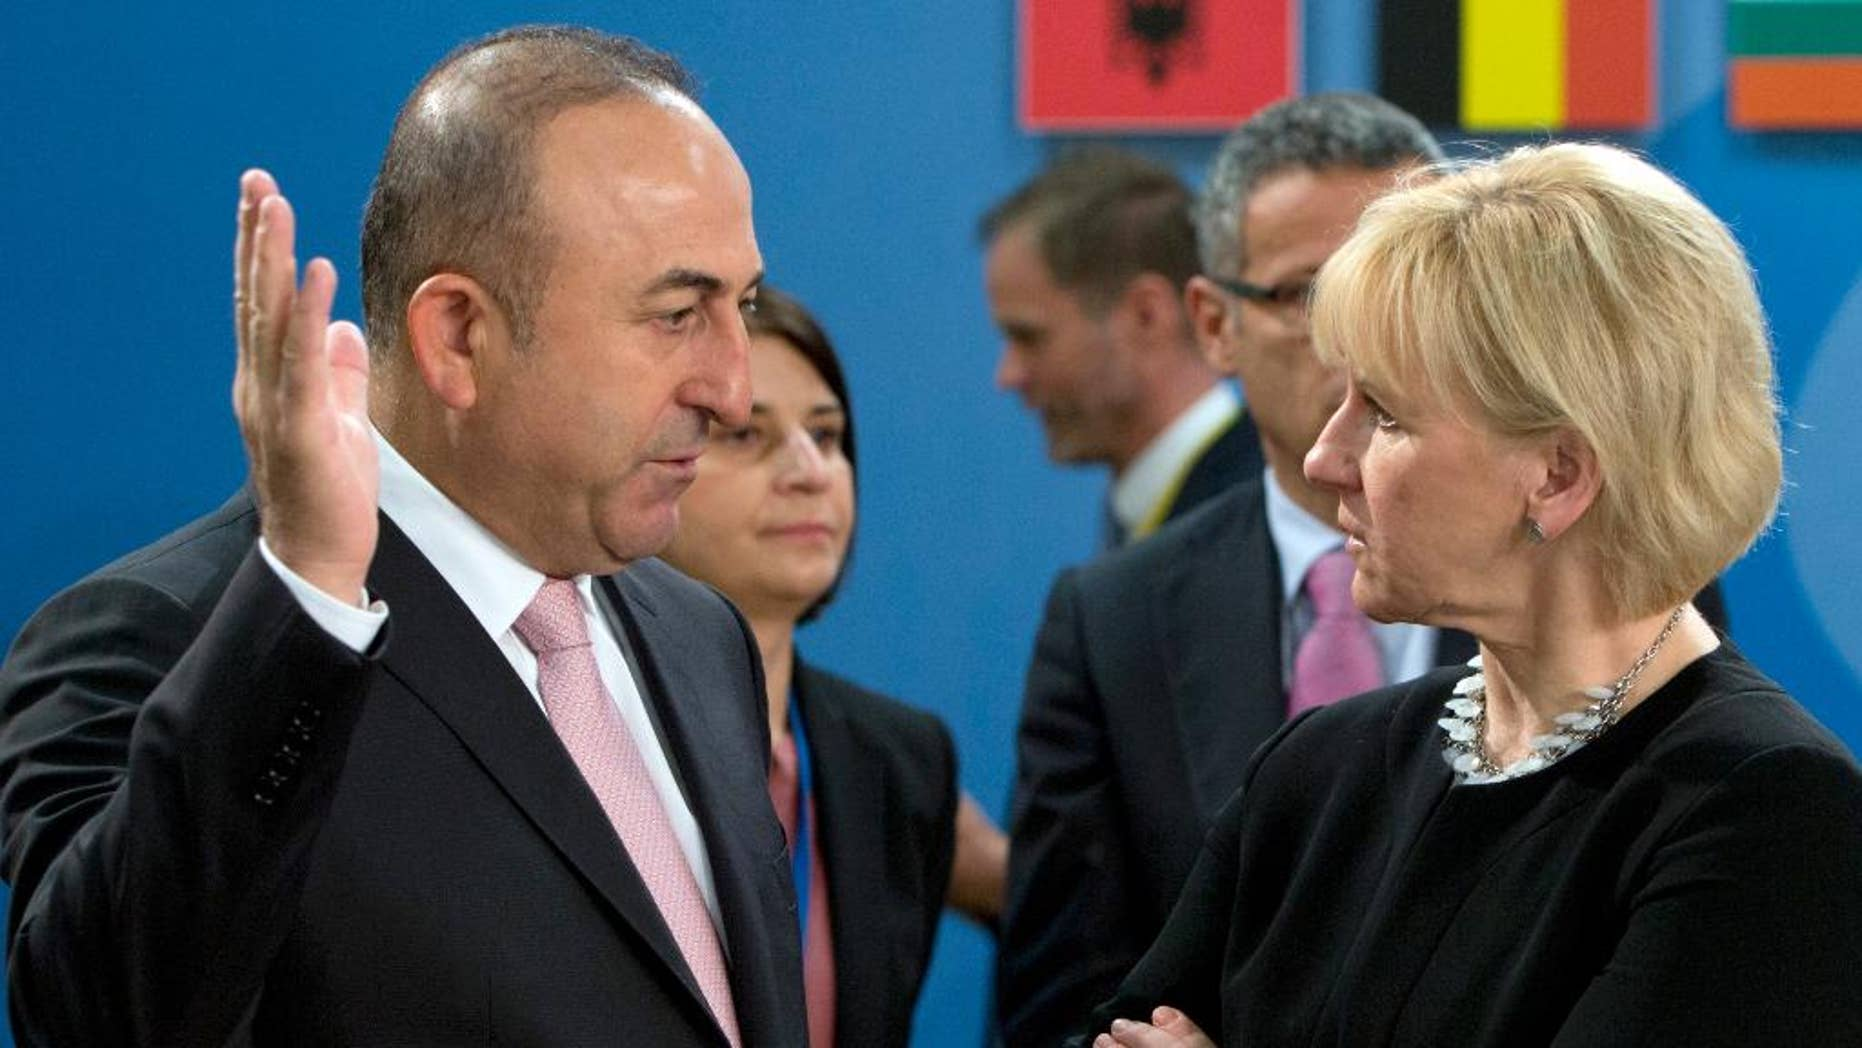 FILE- In this Friday, May 20, 2016 file photo, Turkish Foreign Minister Mevlut Cavusoglu, left, speaks with Swedish Foreign Minister Margot Wallstrom during a meeting of the North Atlantic Council at NATO headquarters in Brussels. Turkey has summoned on Monday, Aug. 15, 2016, officials from Austria and Sweden to protest against news reports and Twitter comments in the two countries relating to a Turkish Constitutional Court ruling on child abuse. (AP Photo/Virginia Mayo, File)